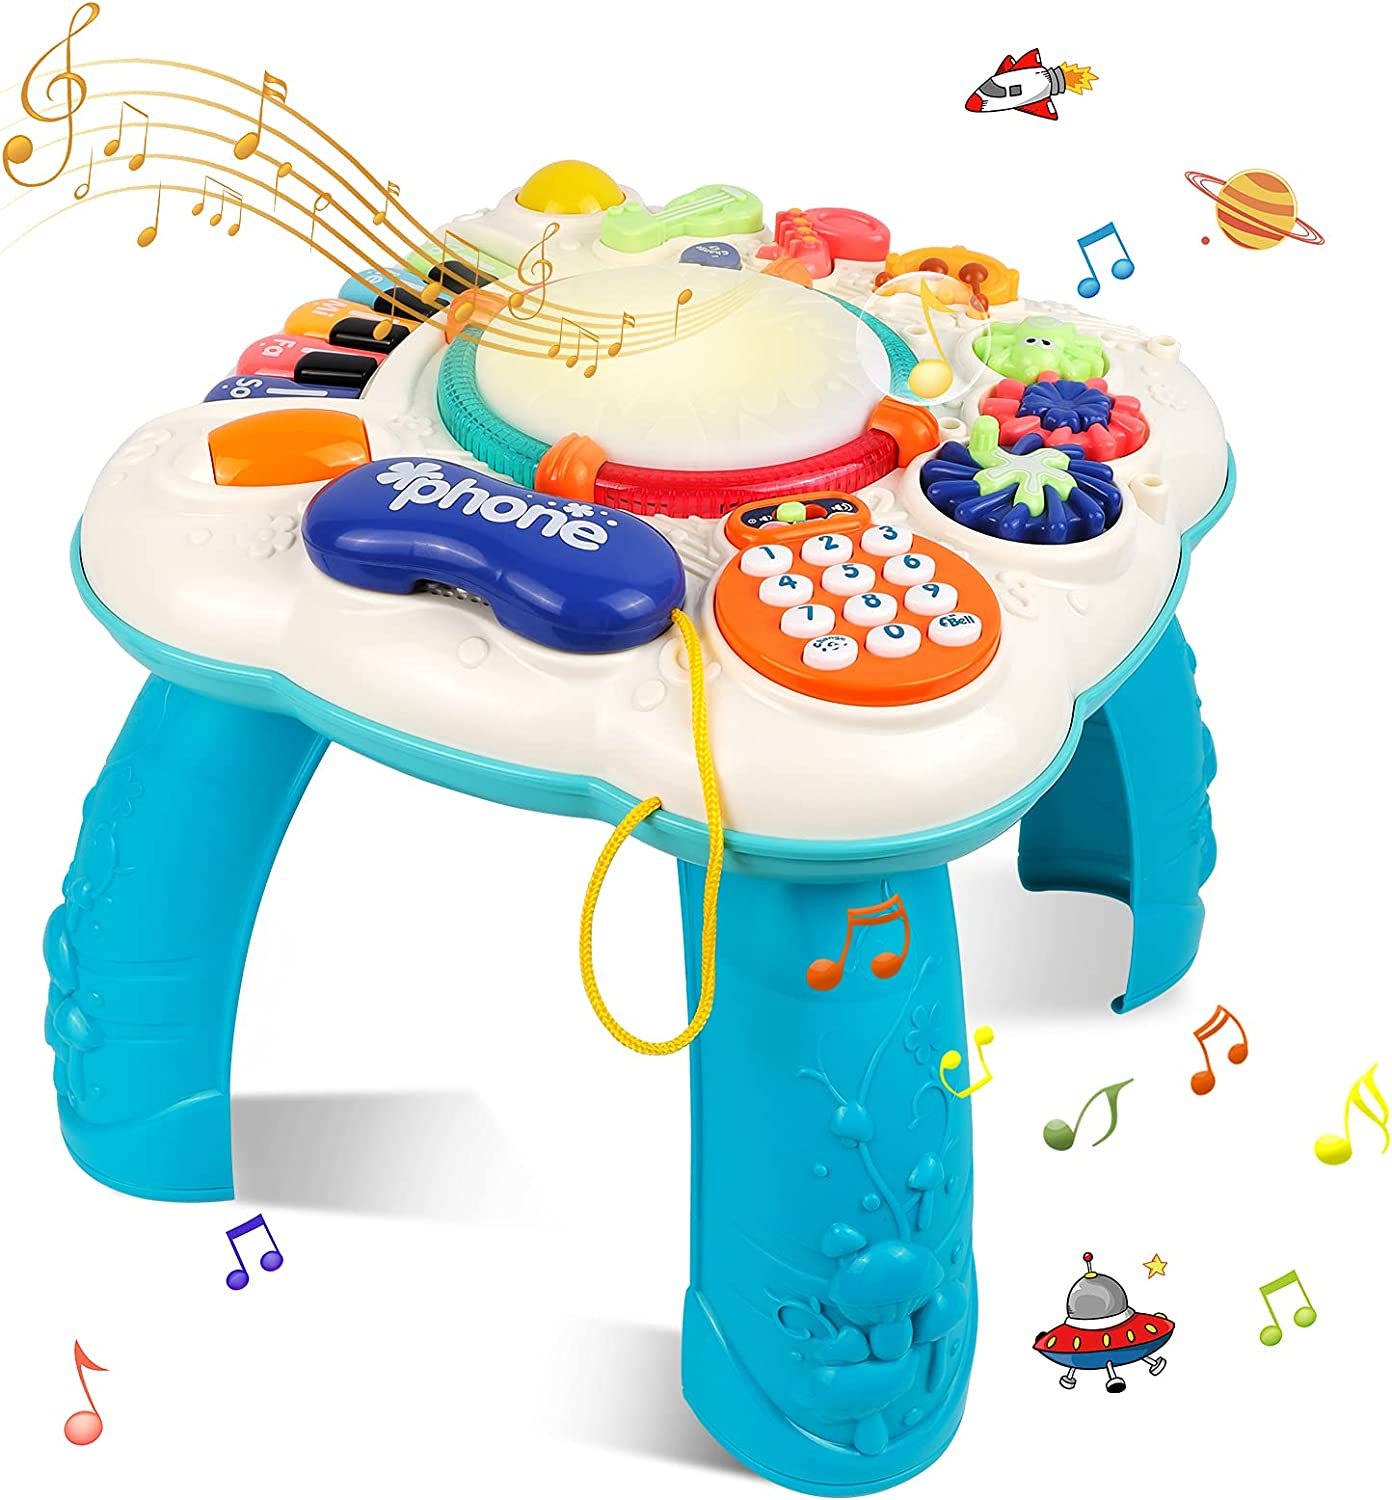 STOTOY Baby Toys Musical Learning Table for Boys & Girls, Early Education Activity Center Table for Toddles with Lights and Melodies, Toys Gifts for 3 4 5 6 7 Years Old Kids